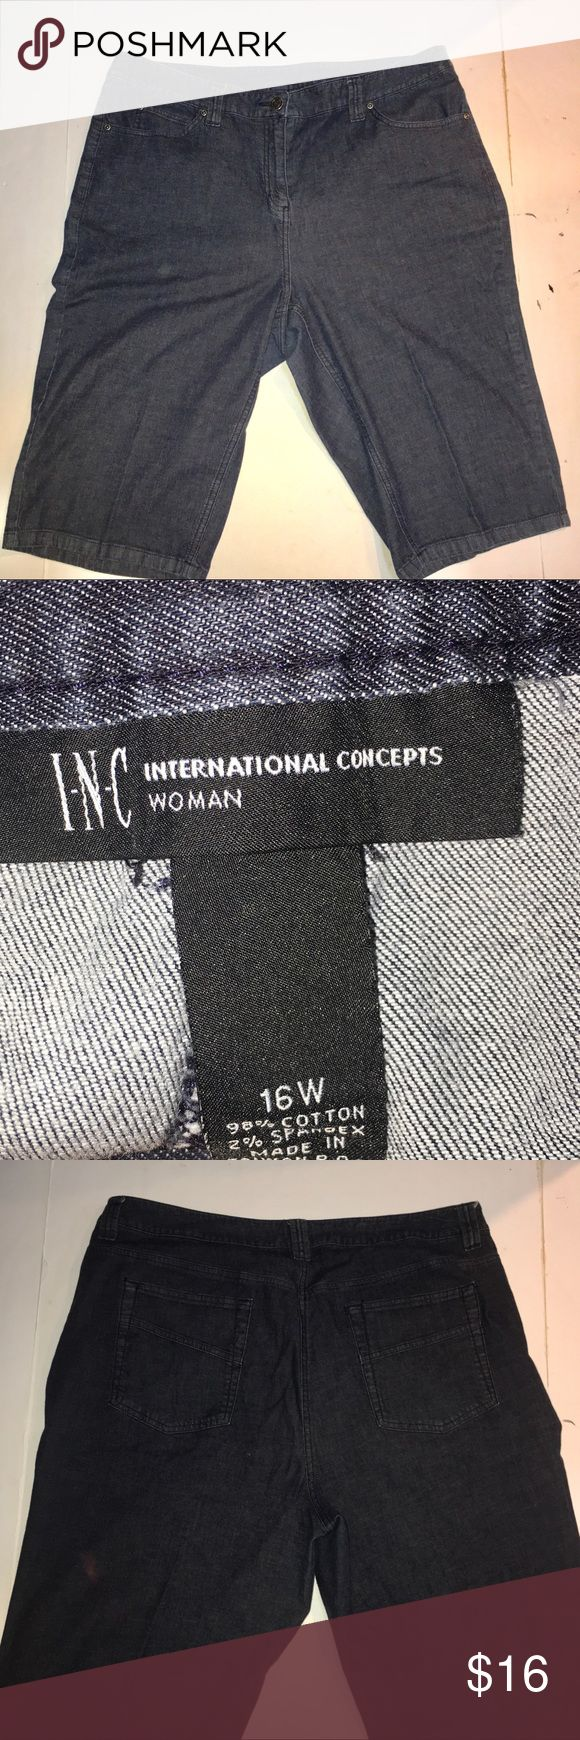 """International Concepts Bermuda shorts In excellent condition! Stretchy fit. 38"""" waist x 14"""" inseam x 12"""" rise INC International Concepts Shorts Bermudas"""